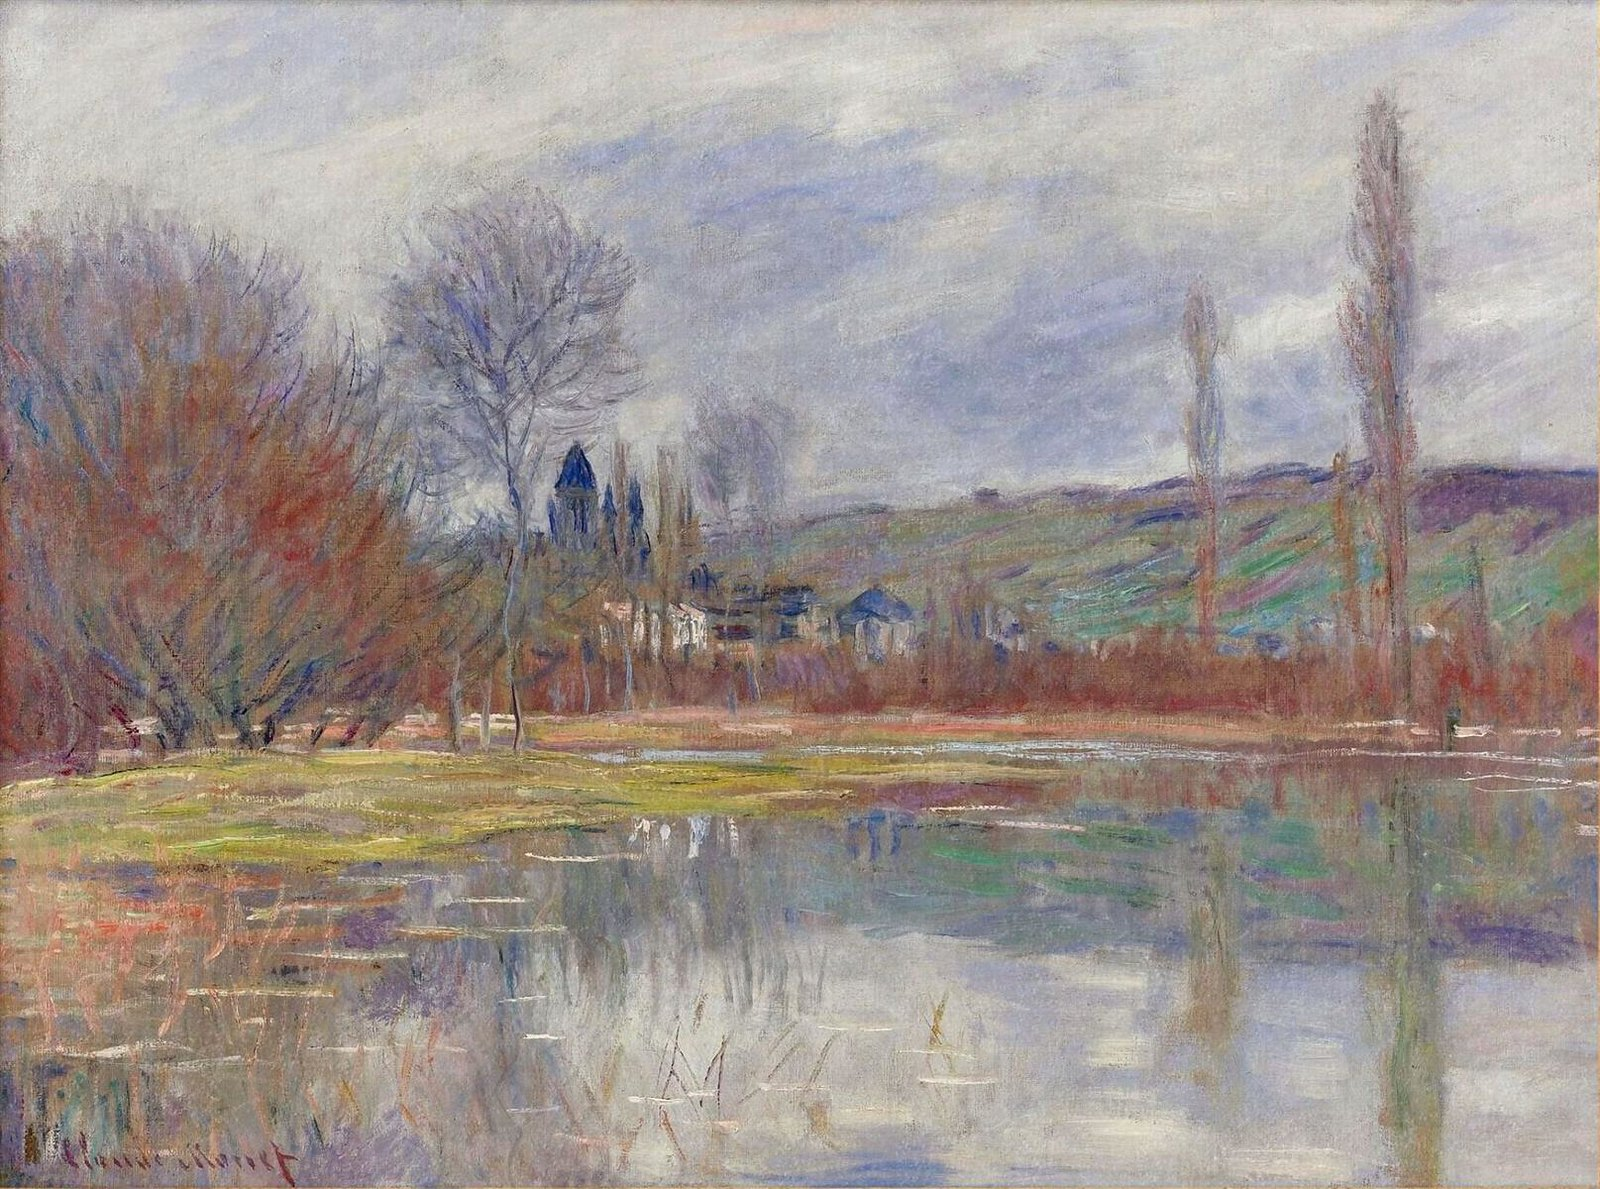 The Spring at Vetheuil by Claude Monet, 1881